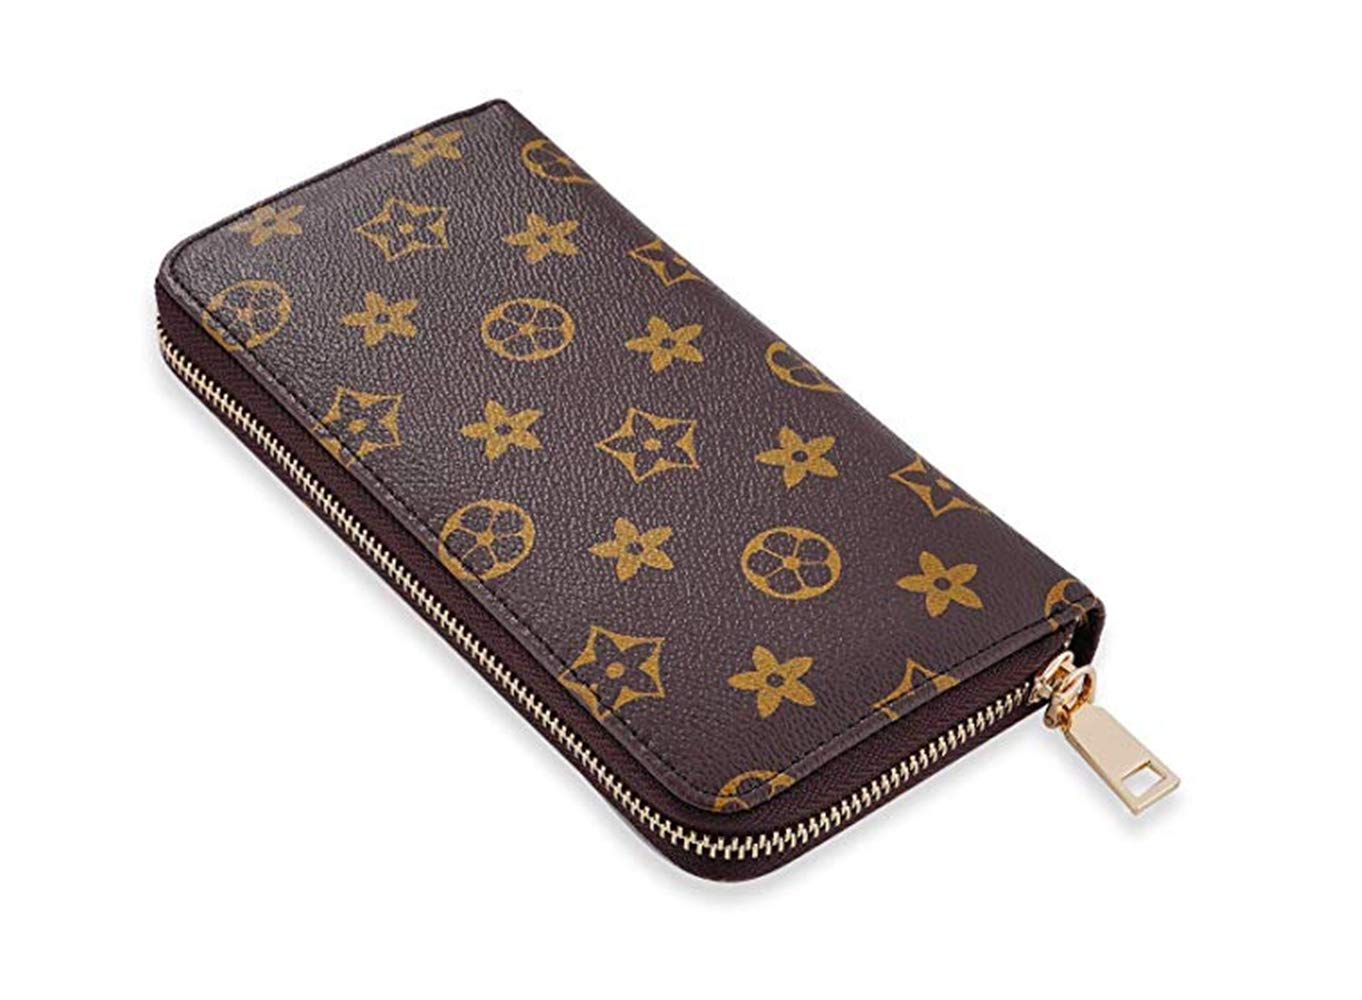 Wristlet Wallets for Womens Big Long Zipper Around Clutch RFID Blocking with Card Holder Organizer - PU Vegan Leather (Flower Brown)